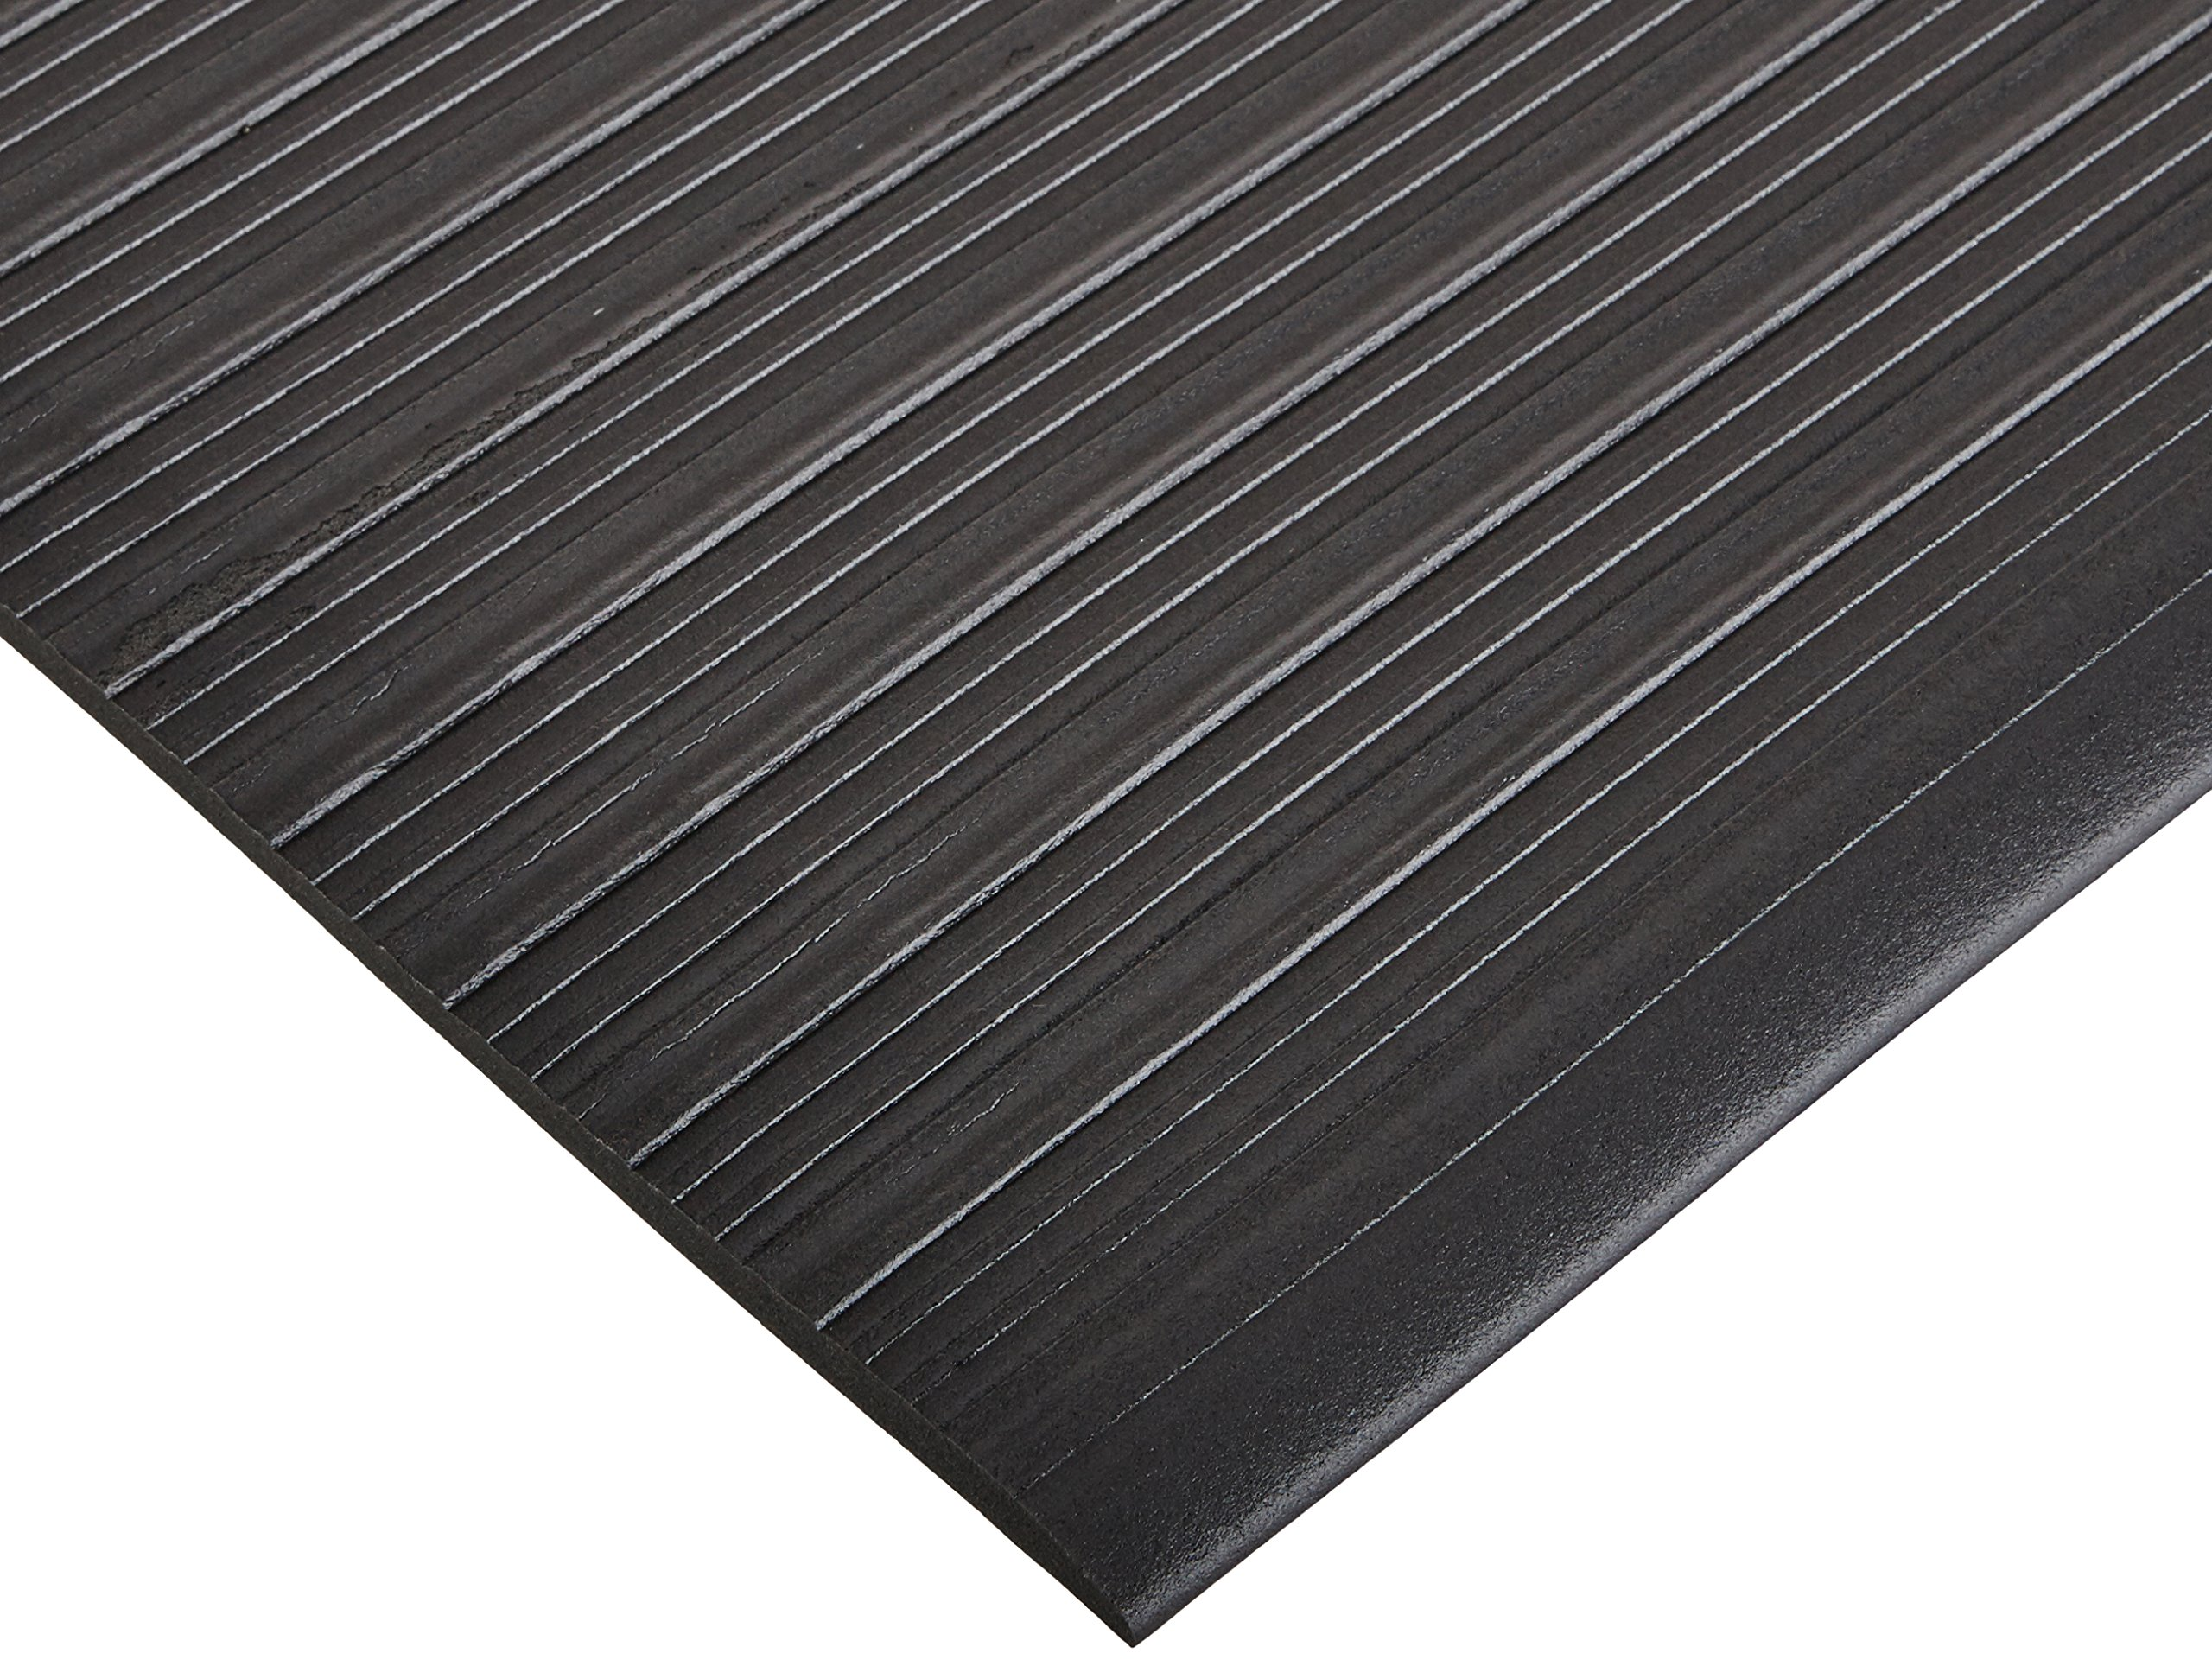 Bertech Anti Fatigue Vinyl Foam Floor Mat, 3' Wide x 10' Long x 3/8'' Thick, Ribbed Pattern, Black (Made in USA)